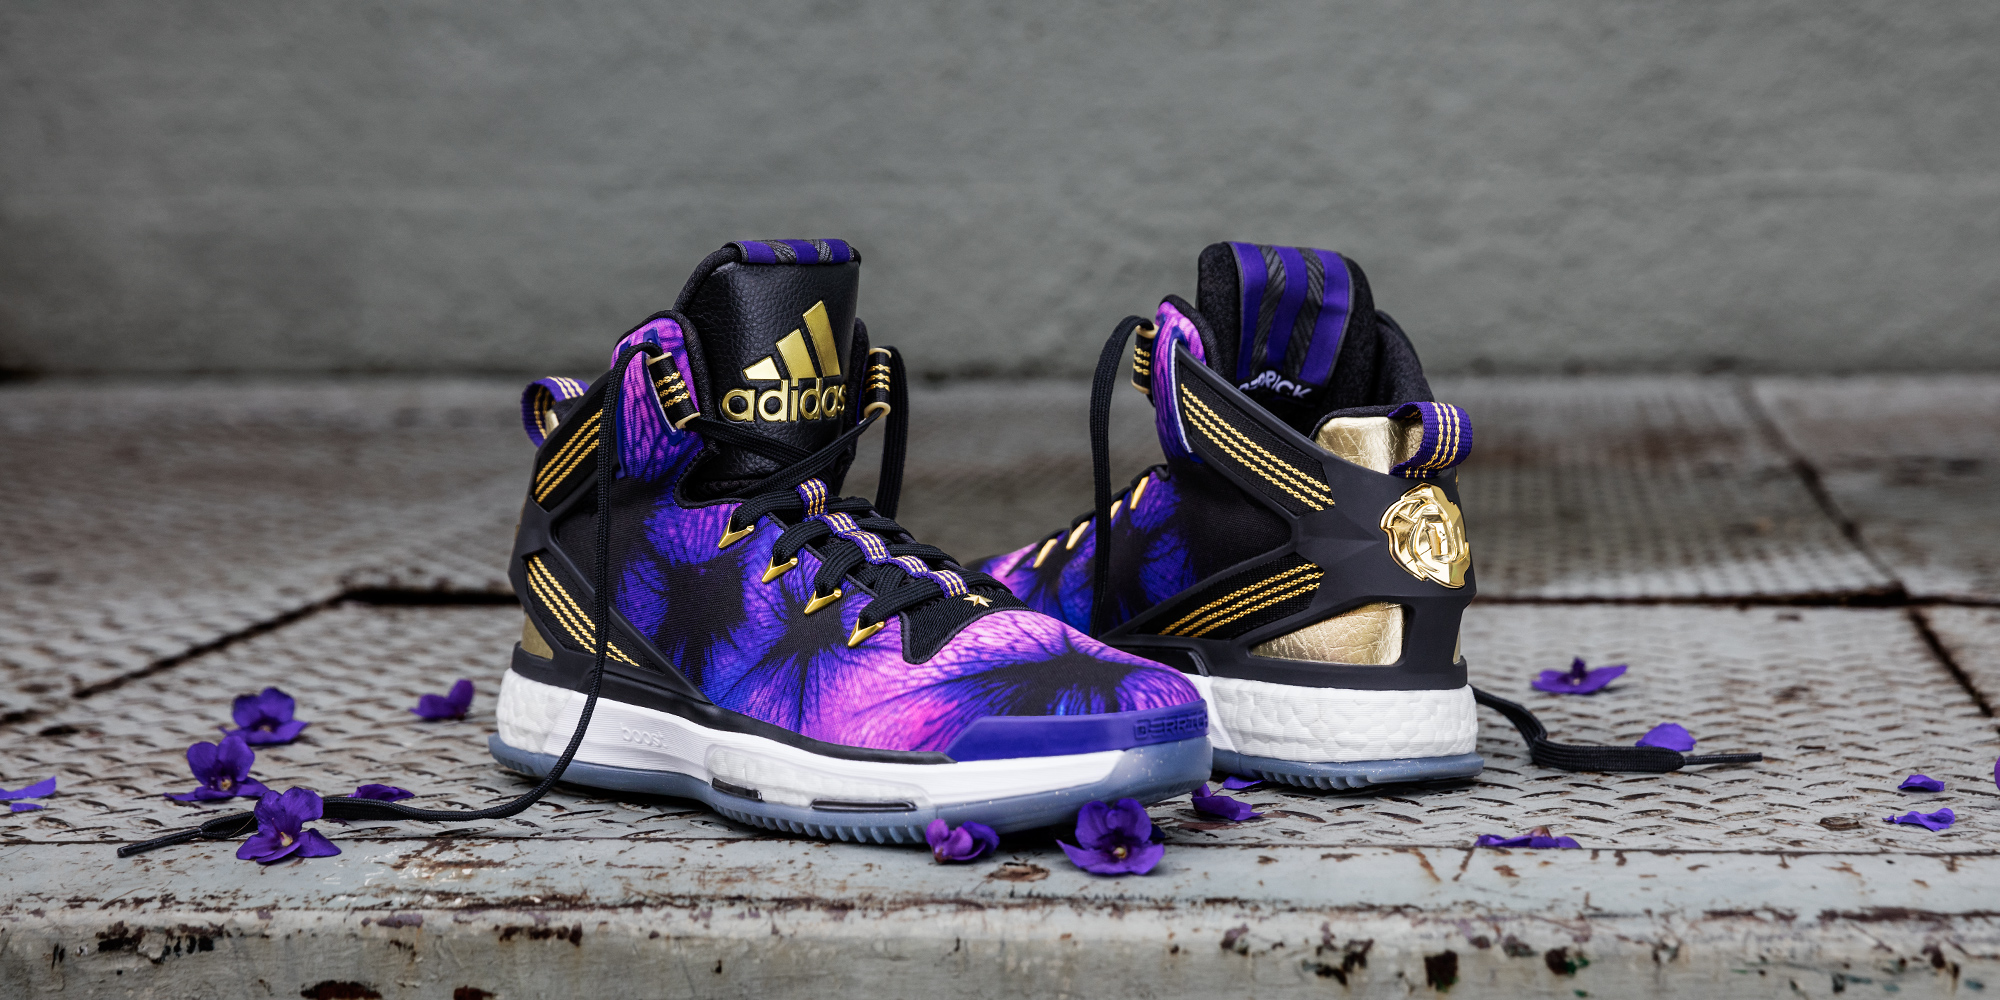 adidas d rose 6 boost bhm